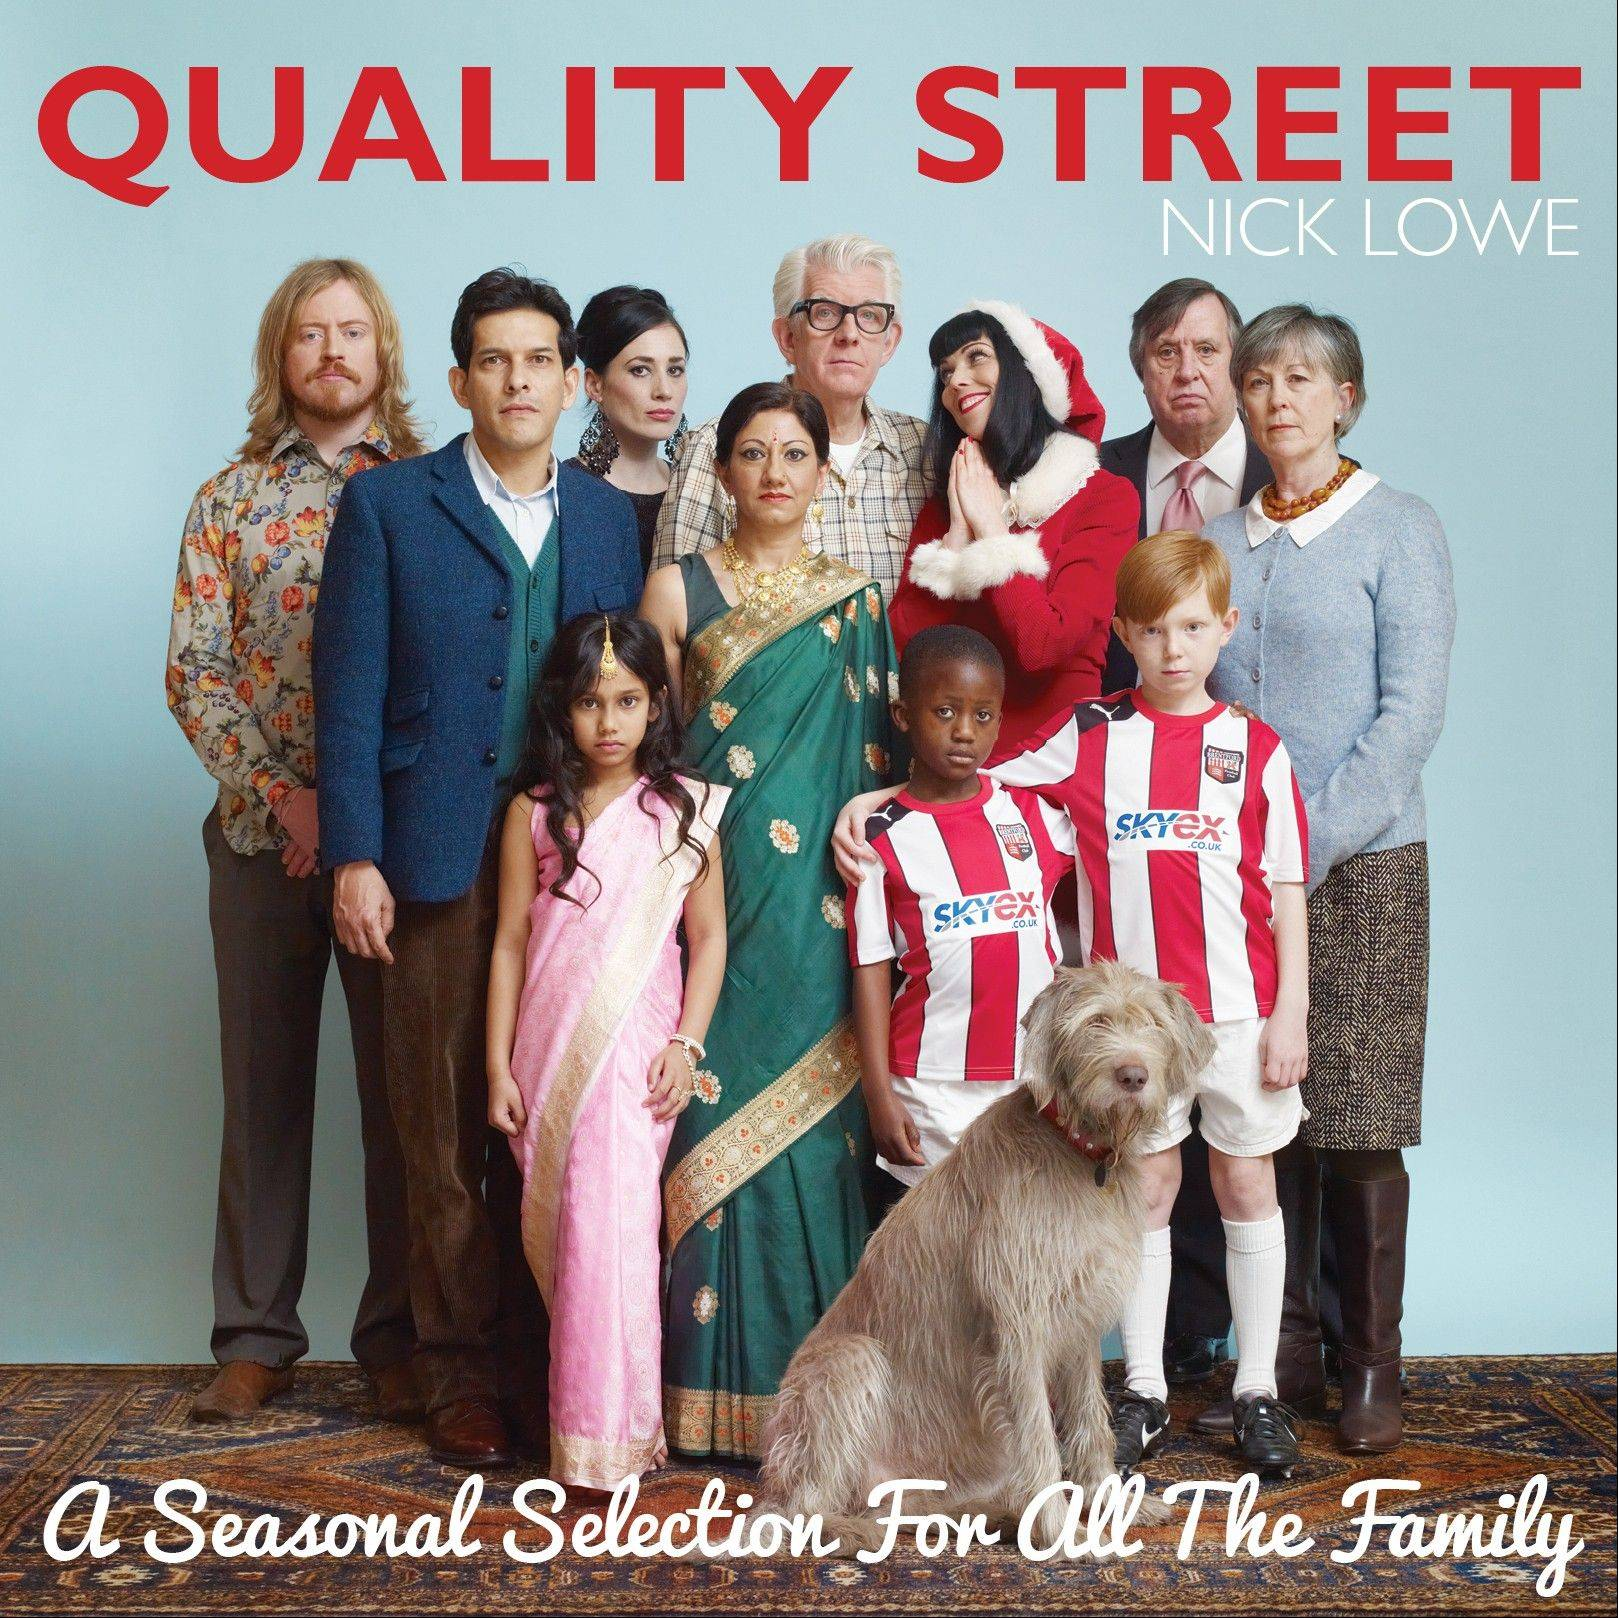 Nick Lowe recently released �Quality Street: a Seasonal Selection for All the Family.�